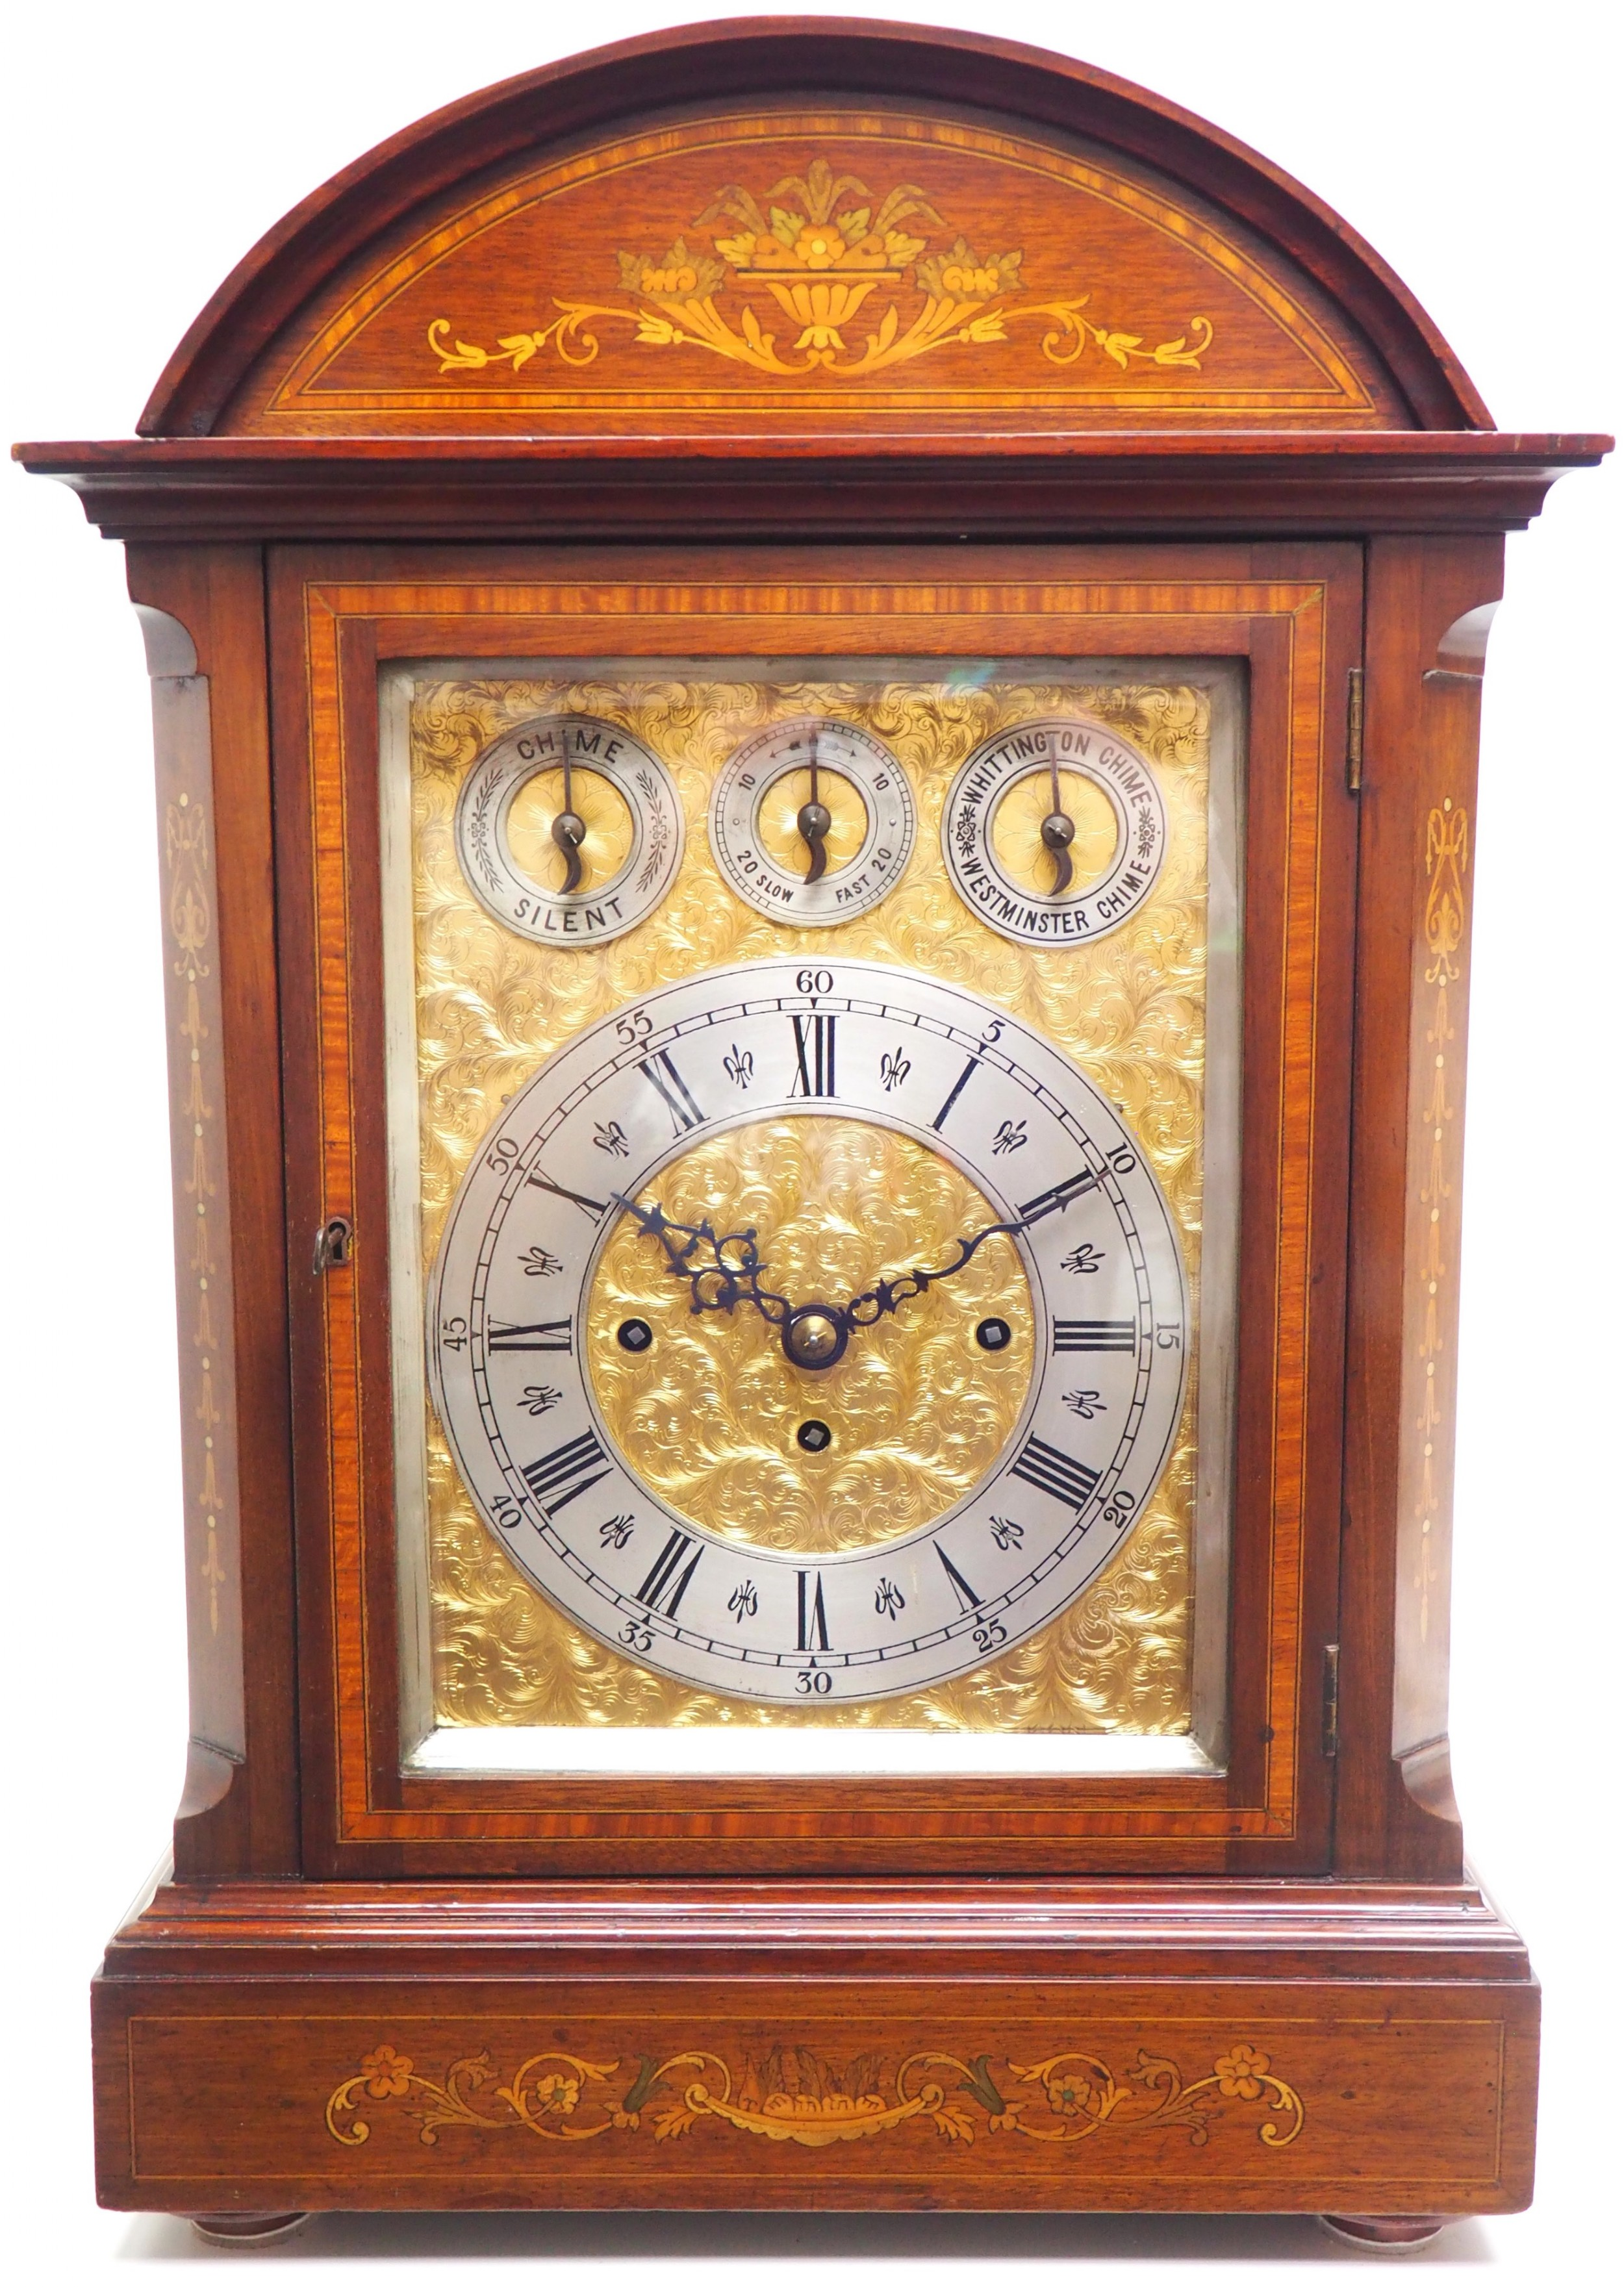 antique musical westminster chime bracket clock 8bell 5coiled gong triple fusee tiny clock on bracket